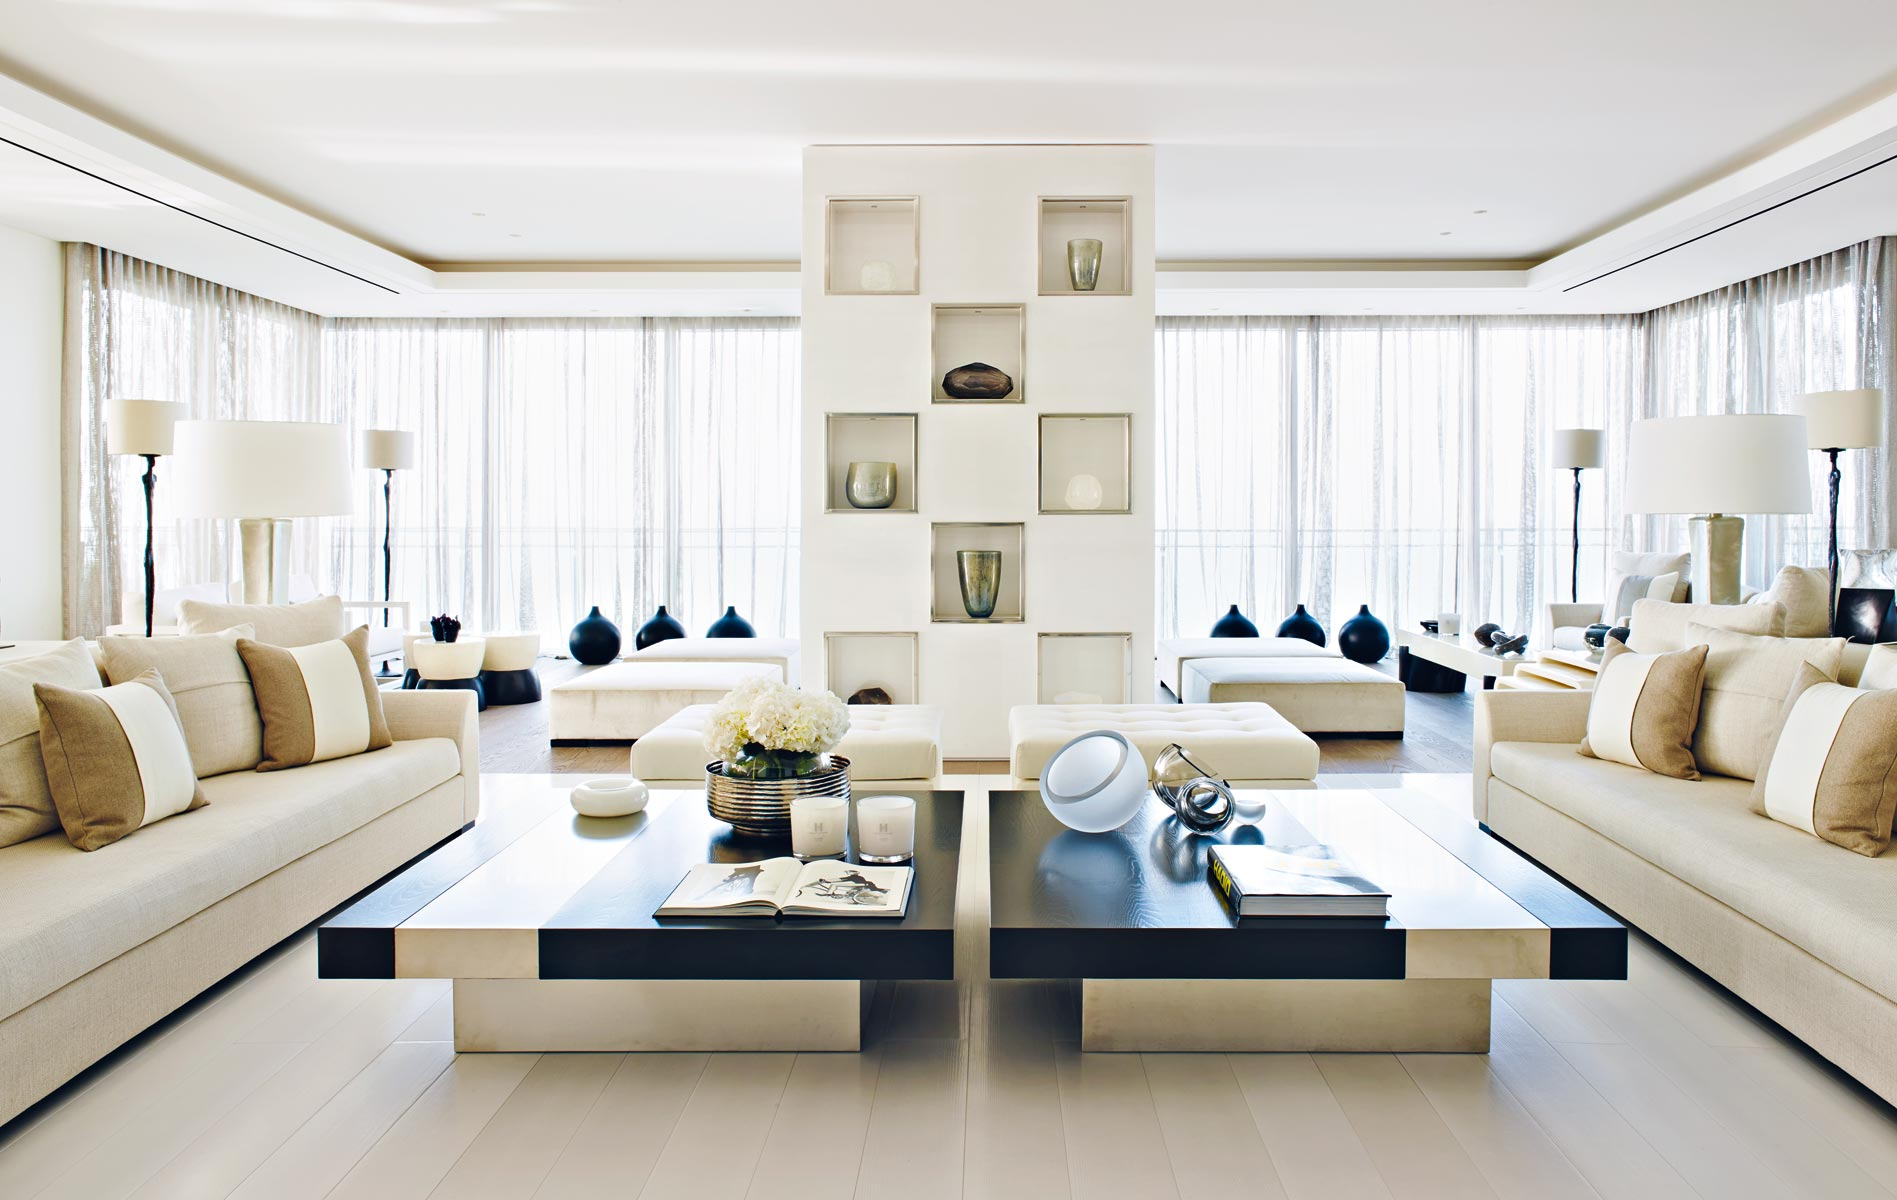 Top 10 kelly hoppen design ideas - Images of beautiful living rooms ...